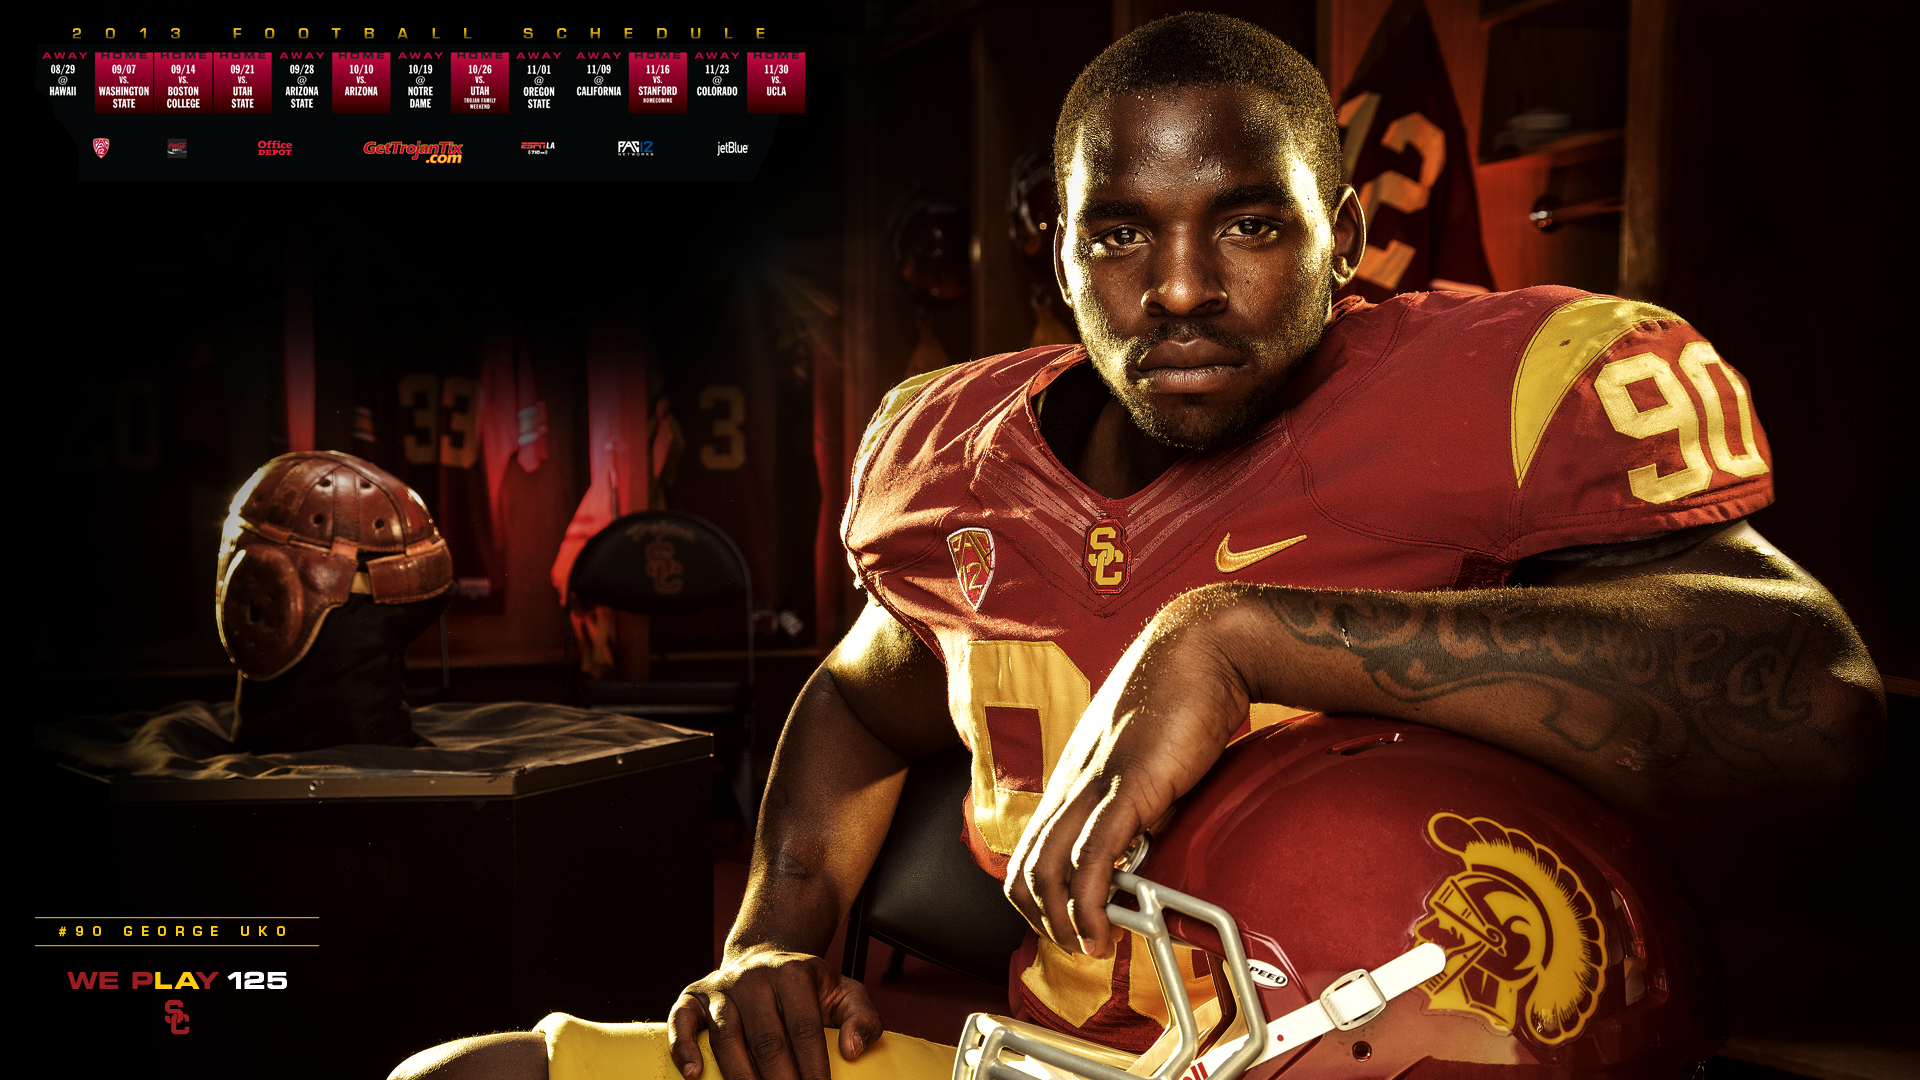 Usc Trojans Football Wallpaper 2013 football schedule poster 1920x1080